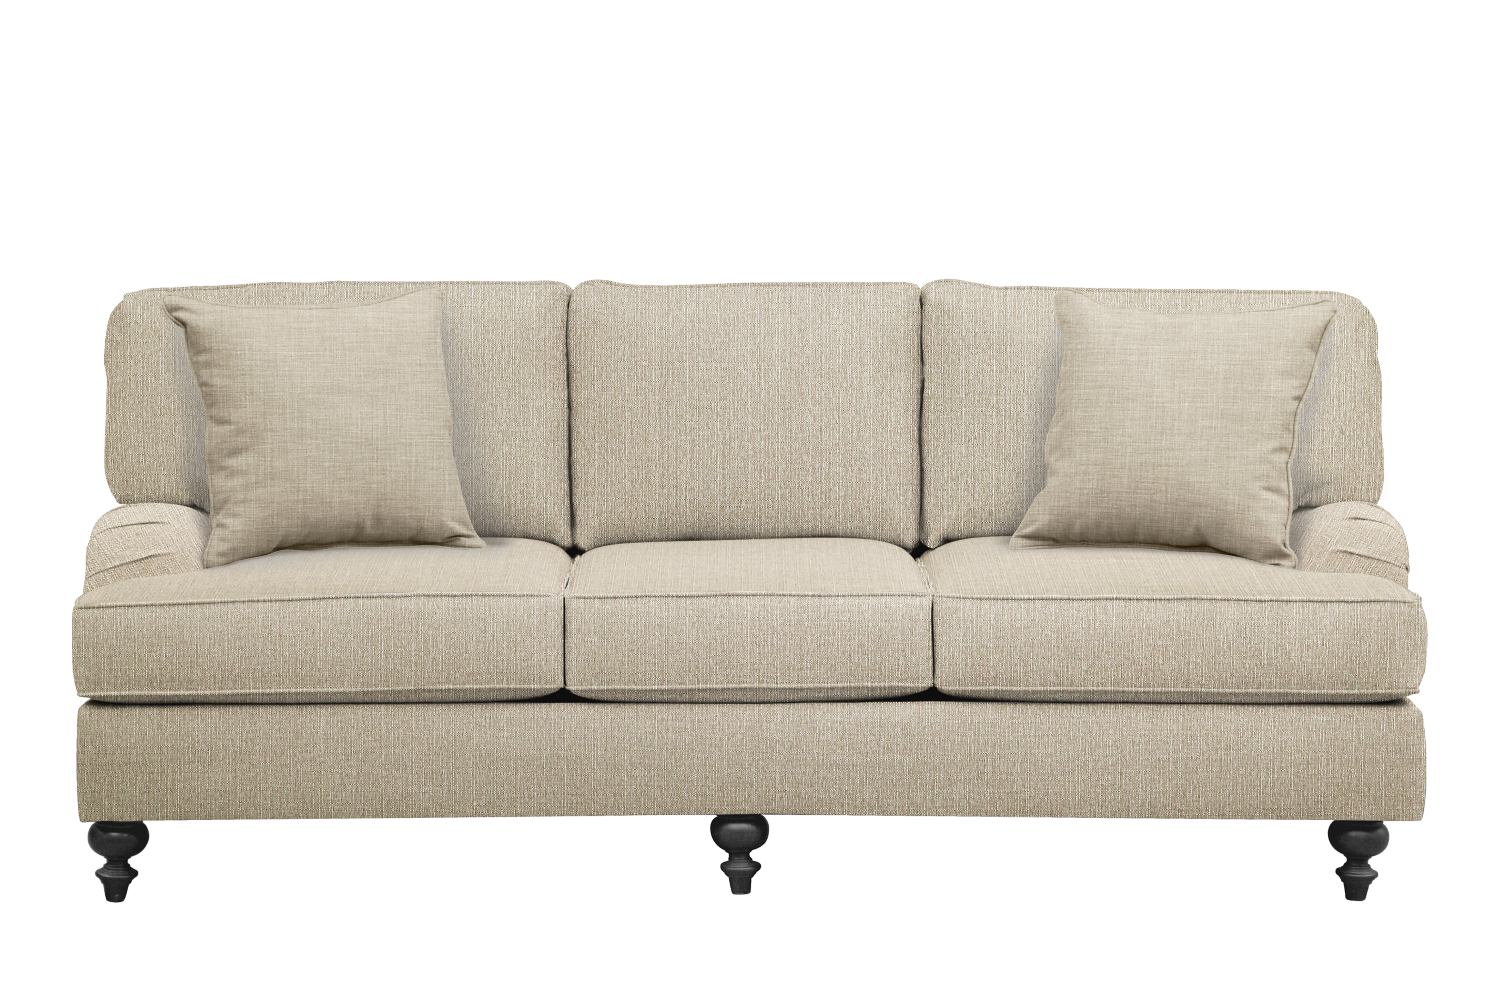 "Living Room Furniture - Avery English Arm Sofa 86"" Depalma Taupe w/ Depalma Taupe  Pillow"